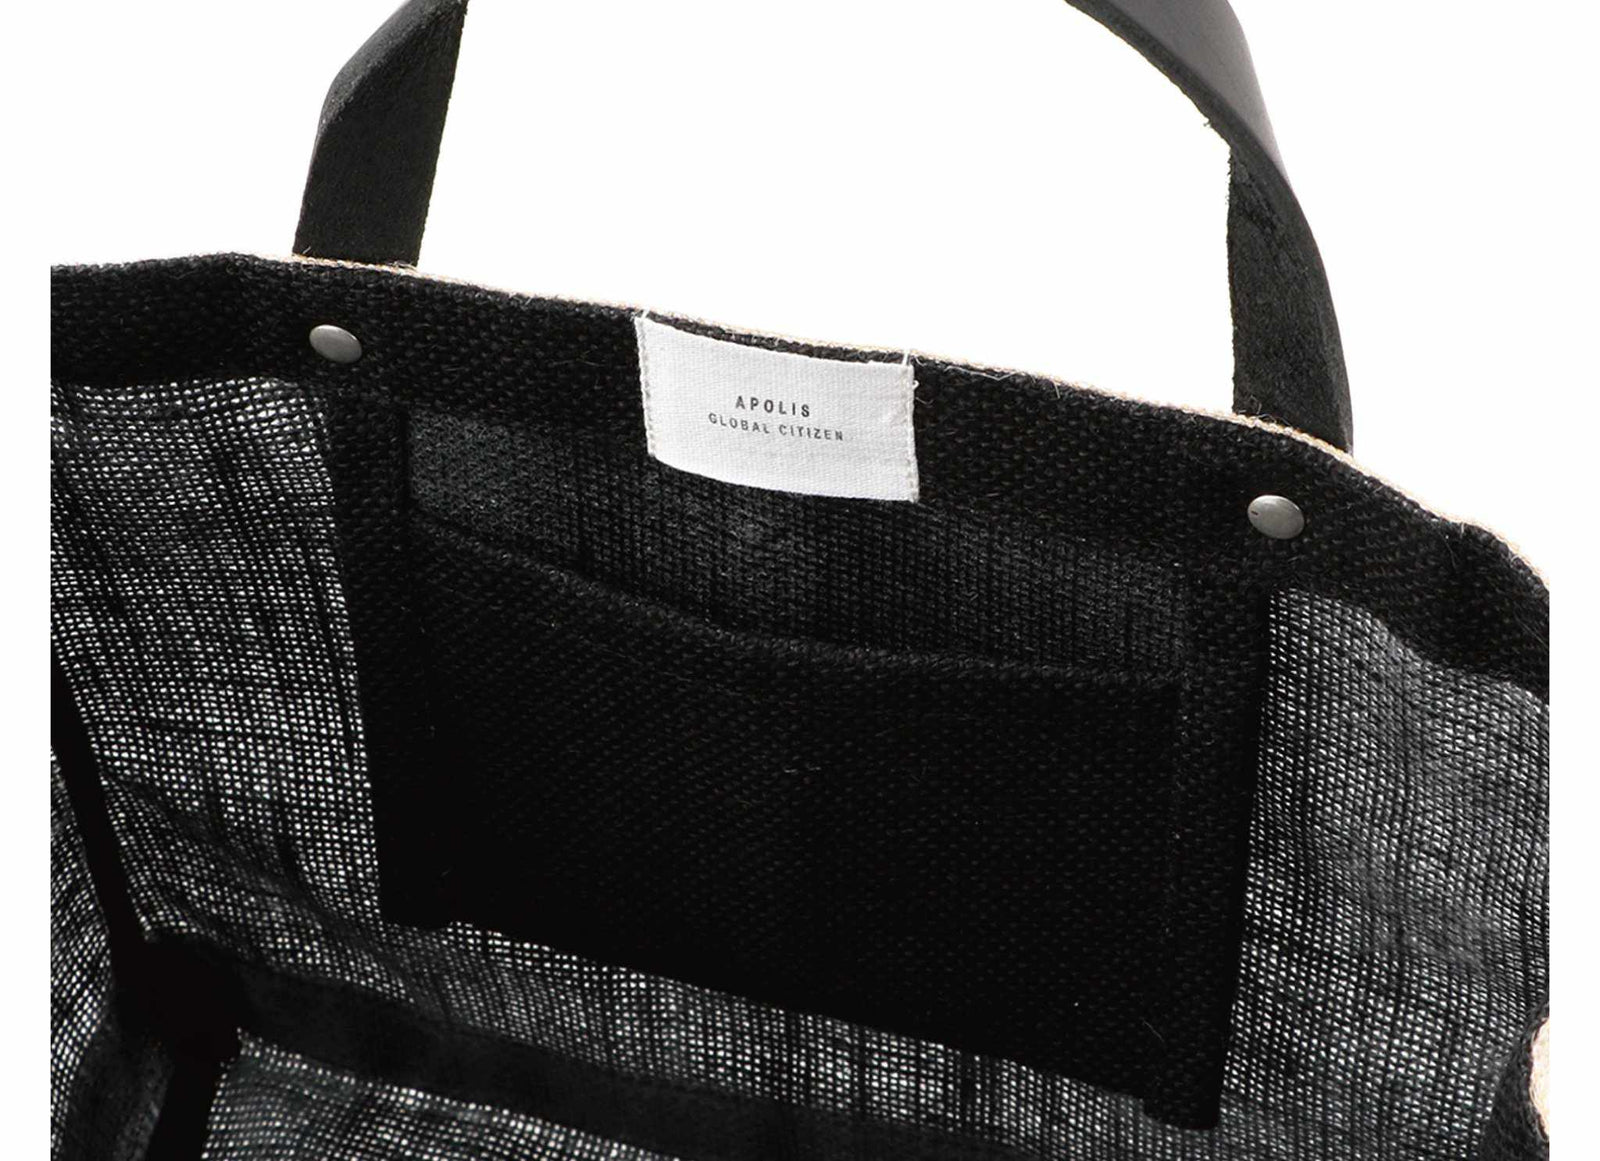 Apolis + Clare V. Merci Petite Market Bag for Baby2Baby®